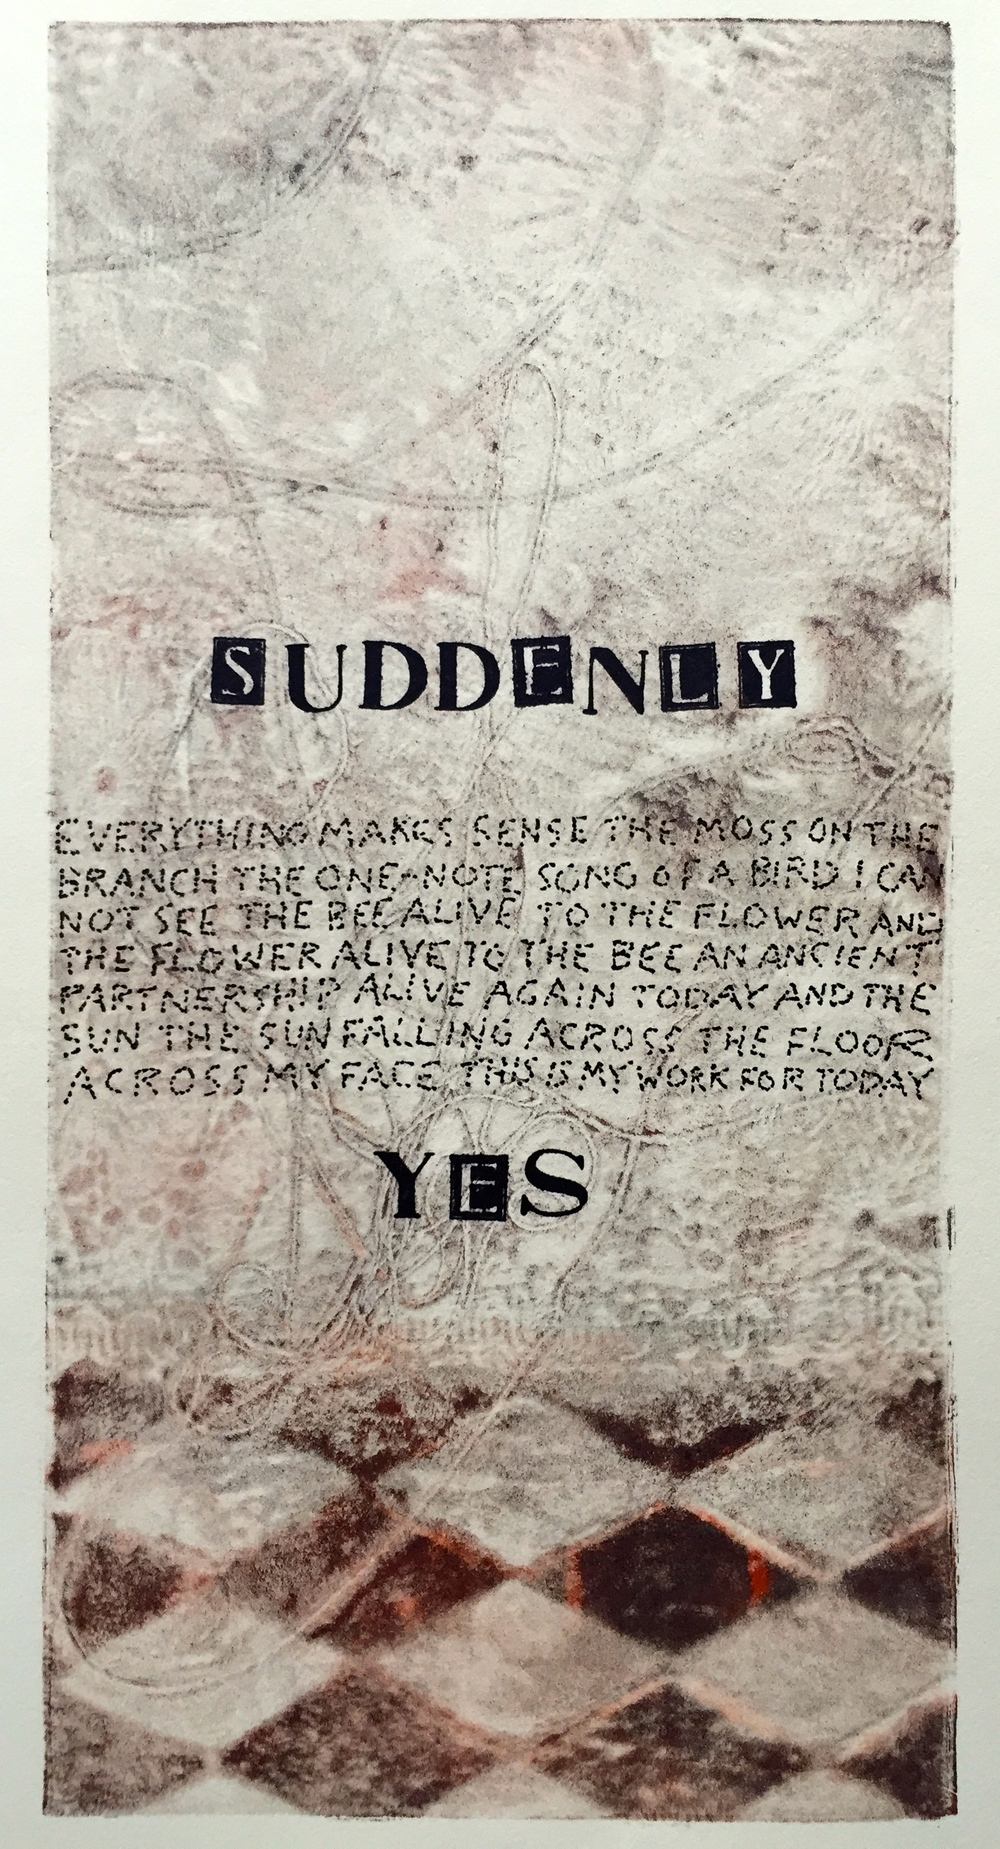 Suddenly Yes   6 x 12 inches  mixed media  image: Susan Webster  hand written and stamped text: Stuart Kestenbaum  2015